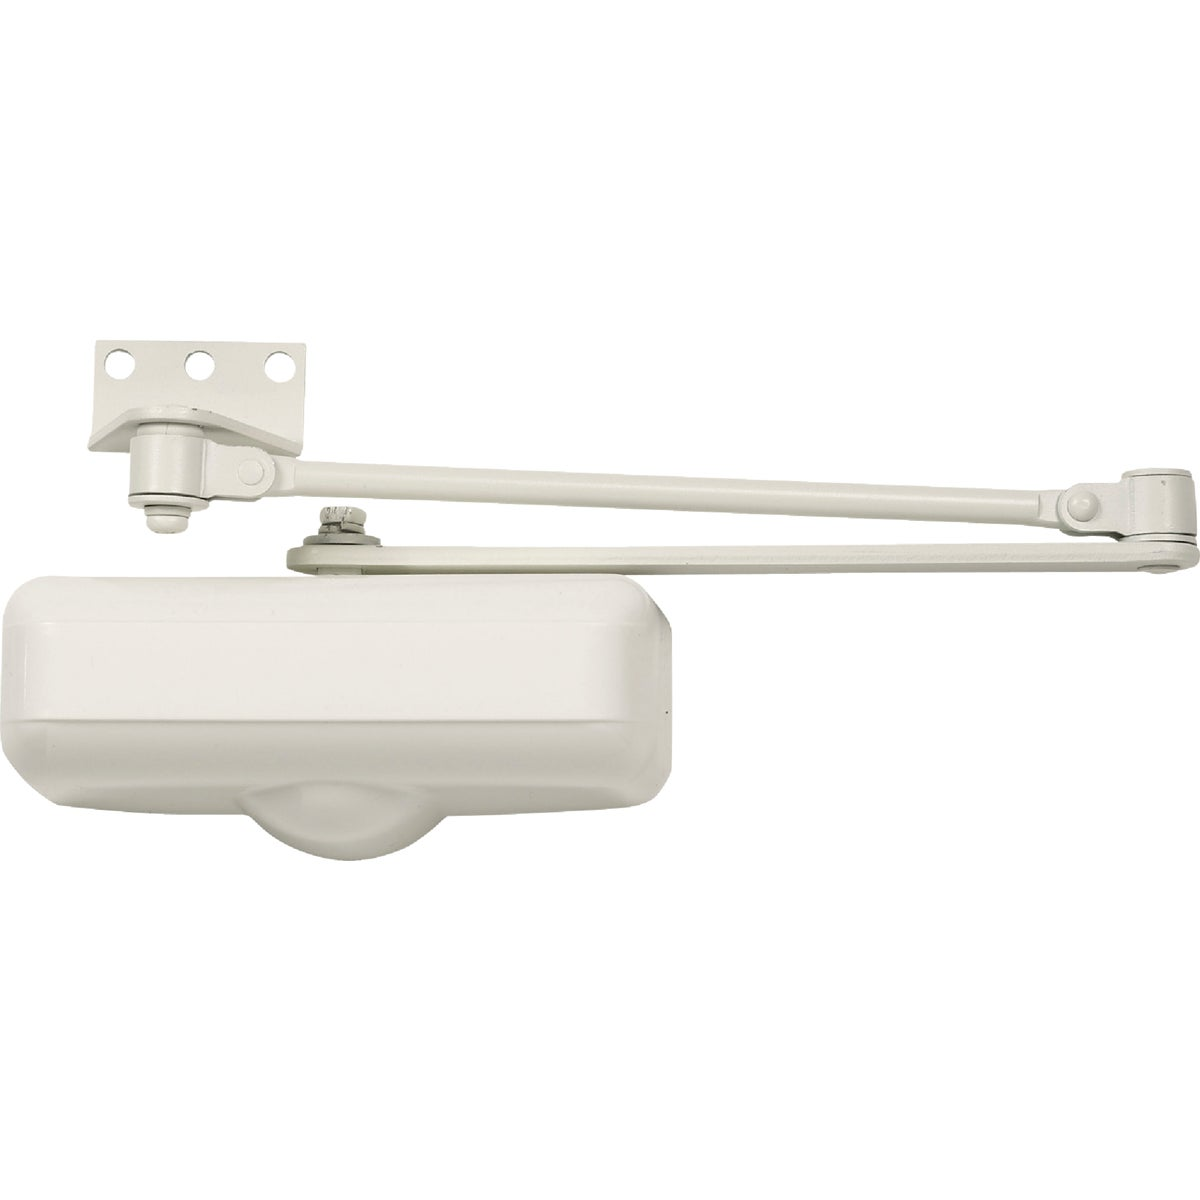 IVORY RES DOOR CLOSER - DC100081 by Tell Mfg Inc